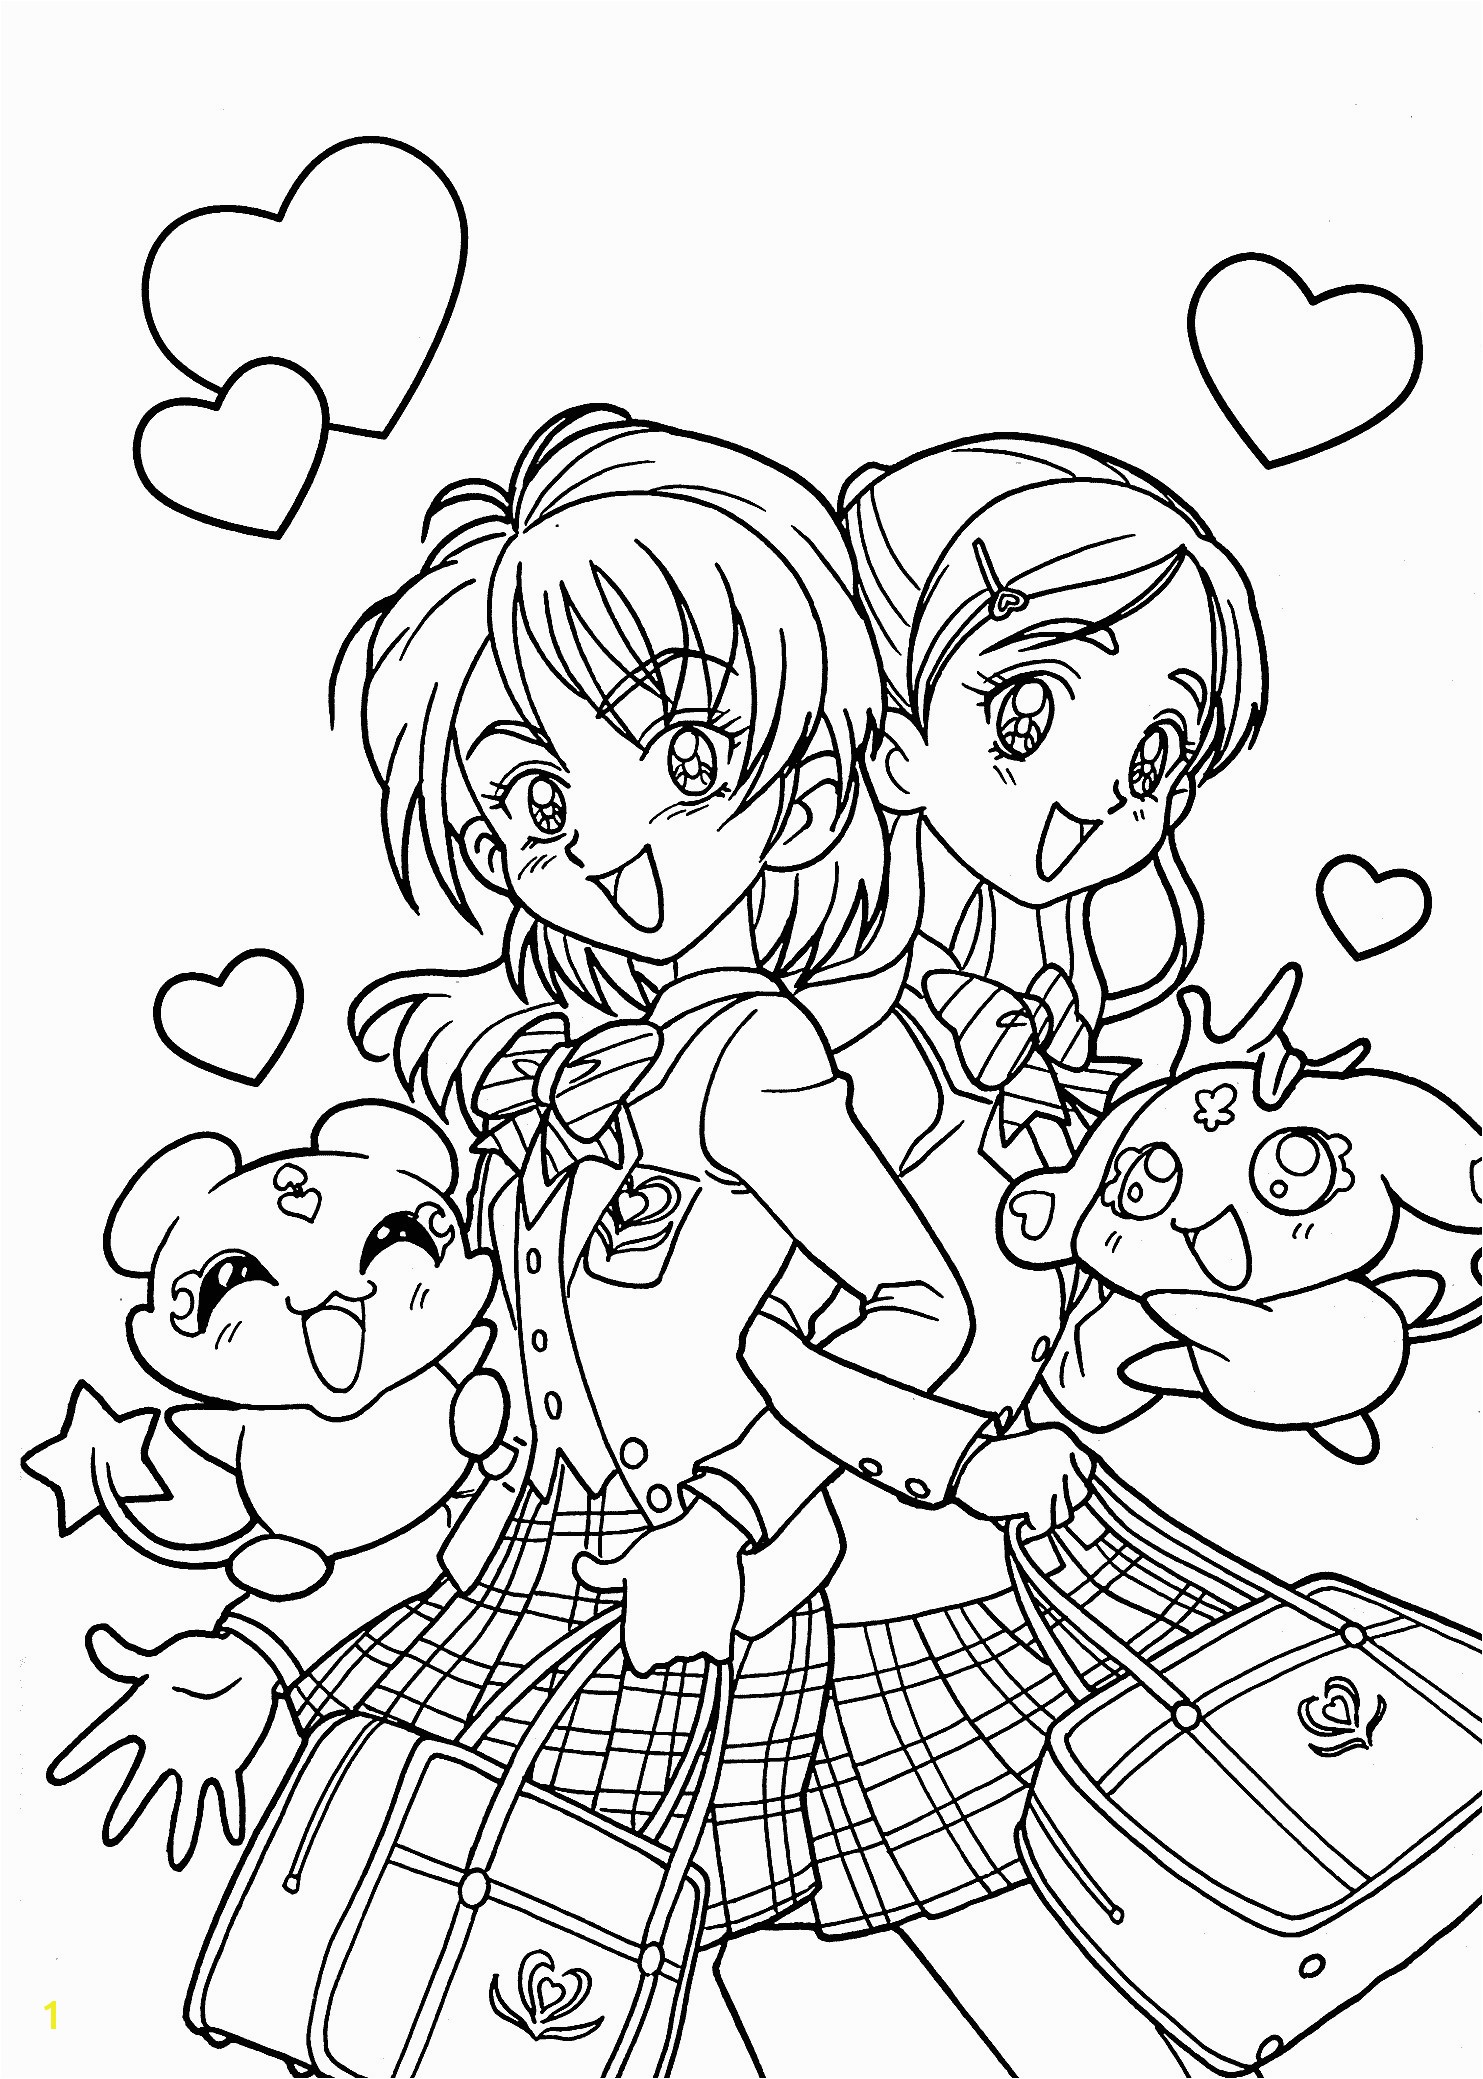 Cute Anime Chibi Girl Coloring Pages Beautiful Printable Coloring Pages for Girls Lovely Printable Cds 0d – Fun